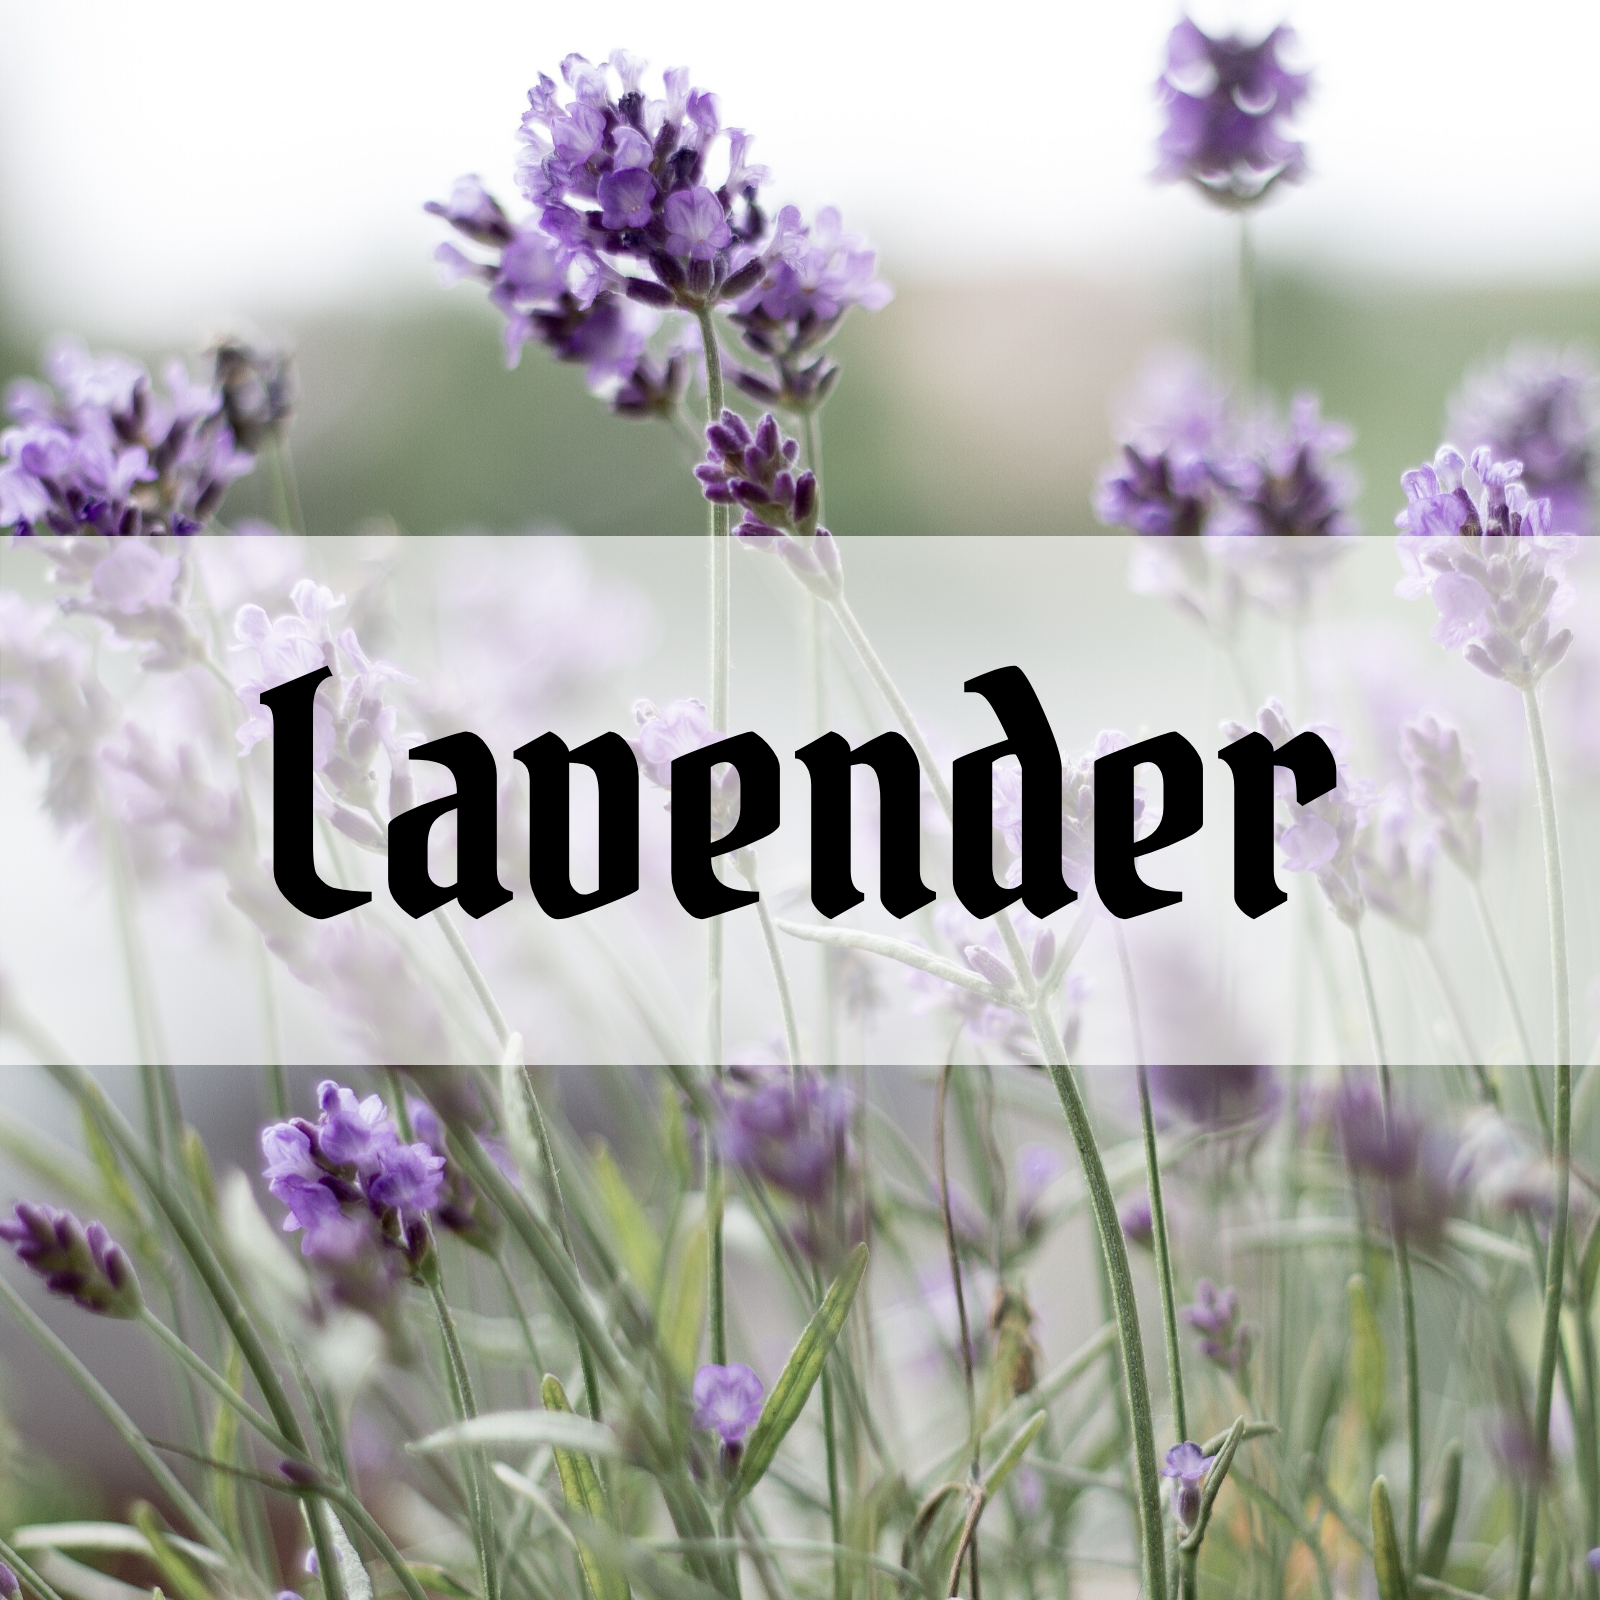 Lavender essential oil benefits and uses in alchemy, magick and spagyrics